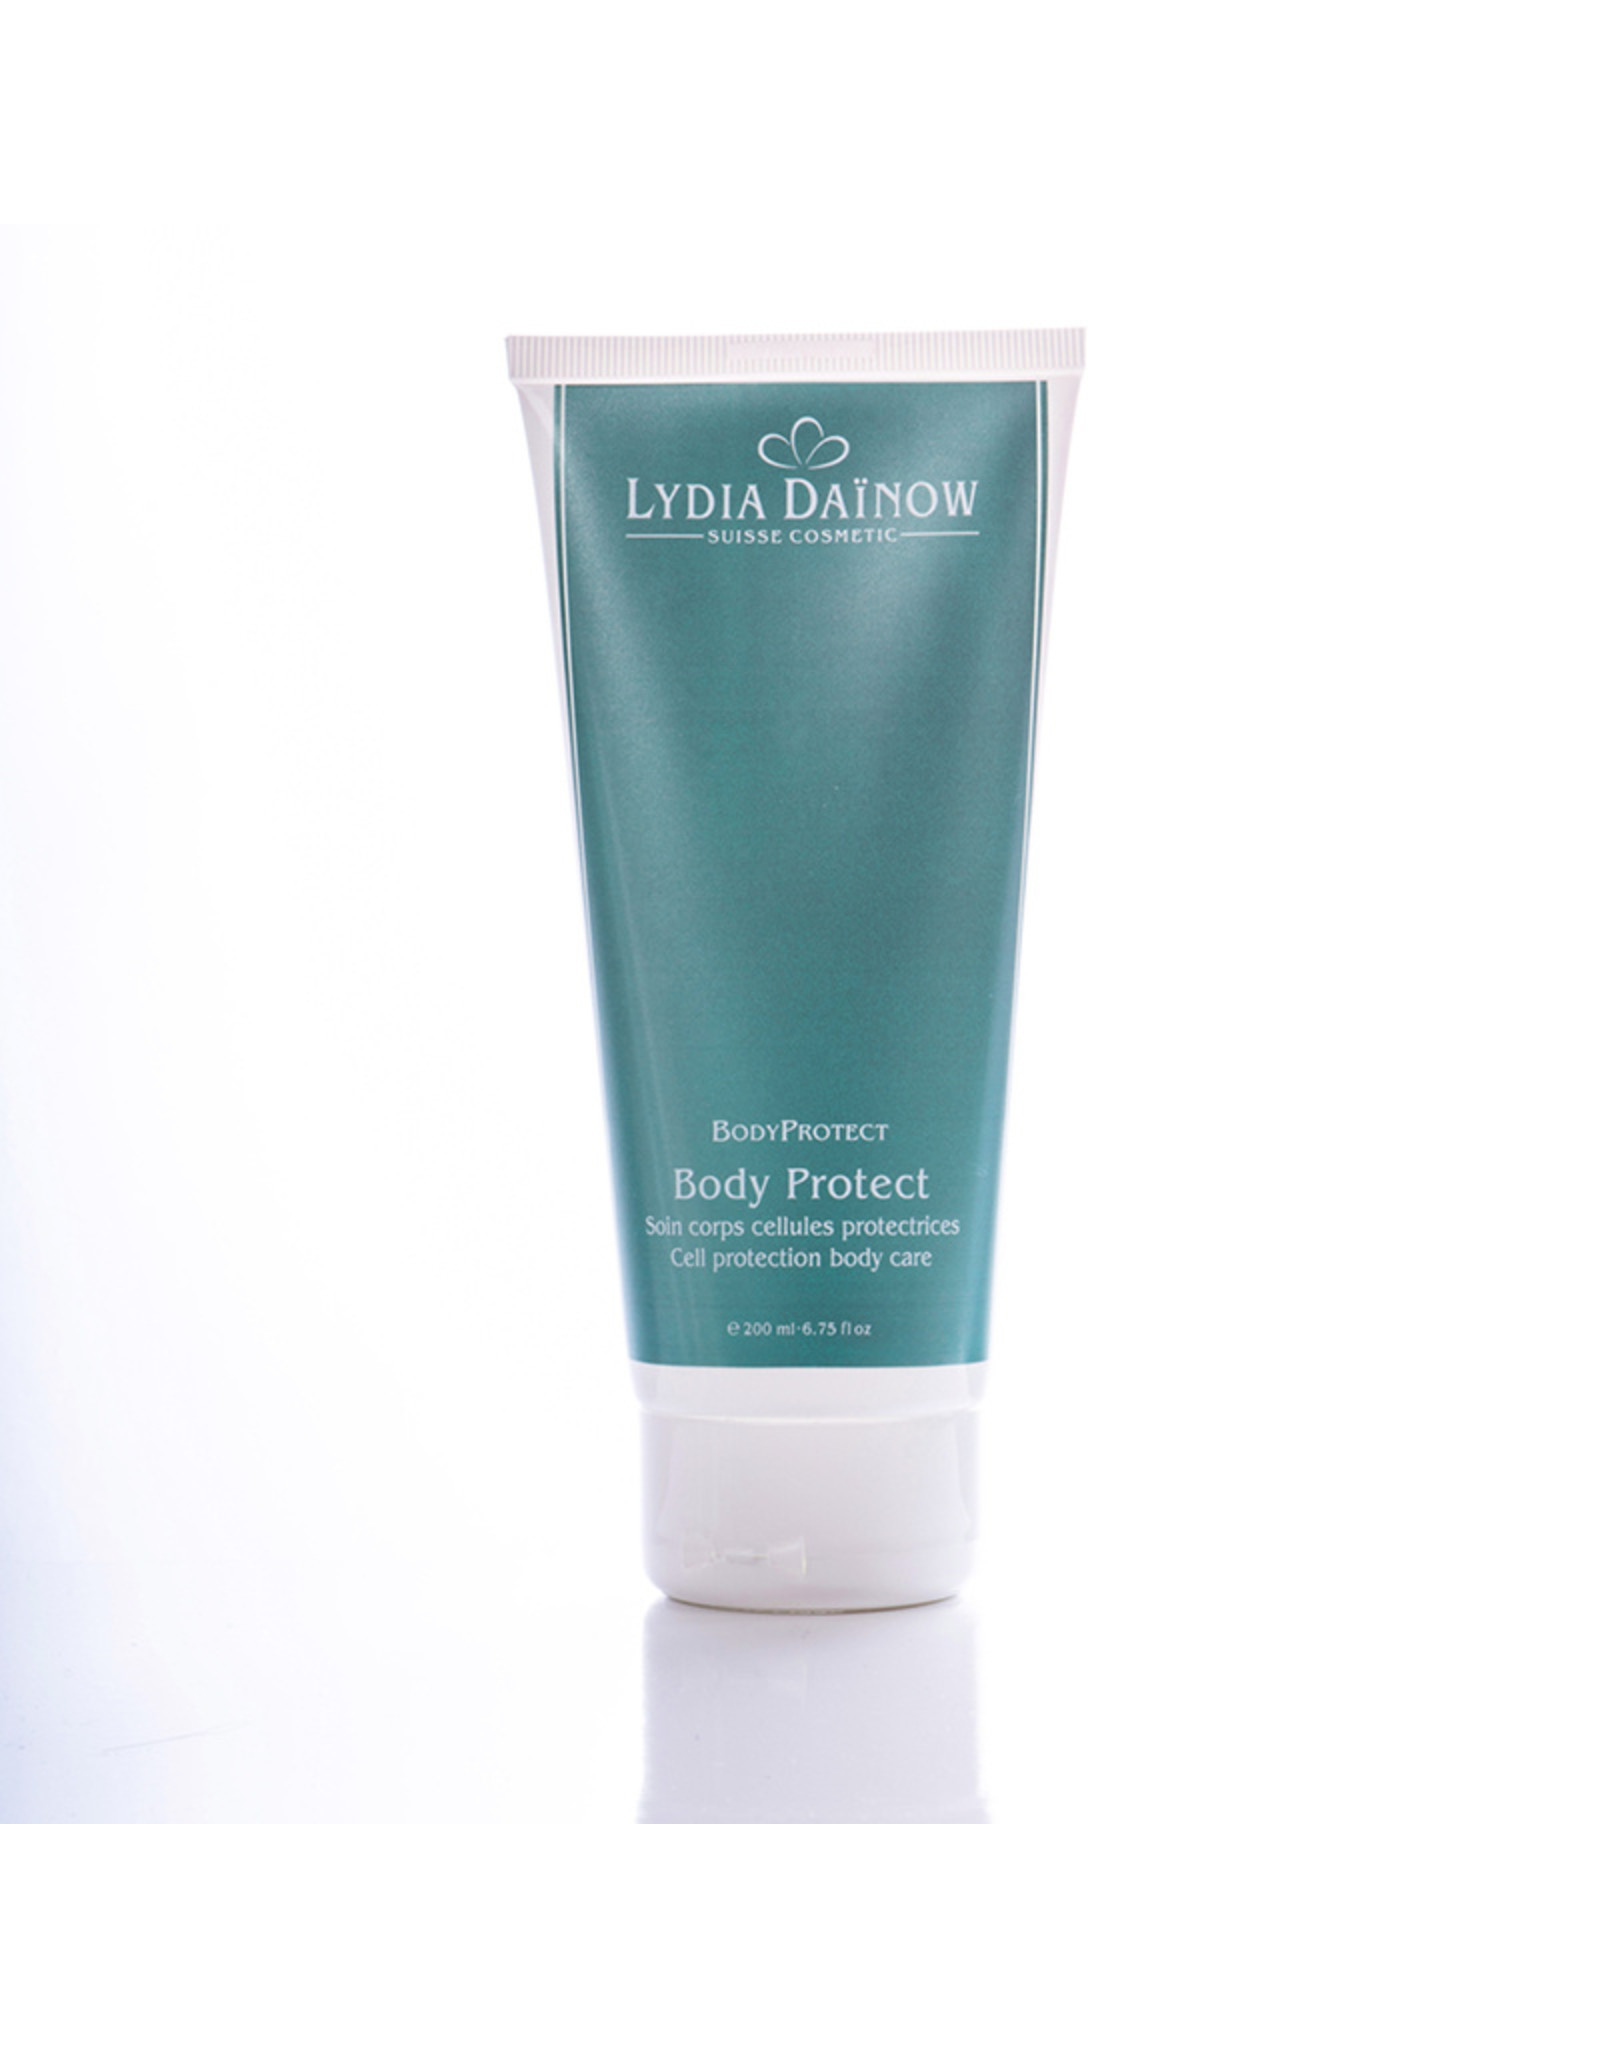 Lydïa Dainow Body Protect - Fluide corps avec OM24®